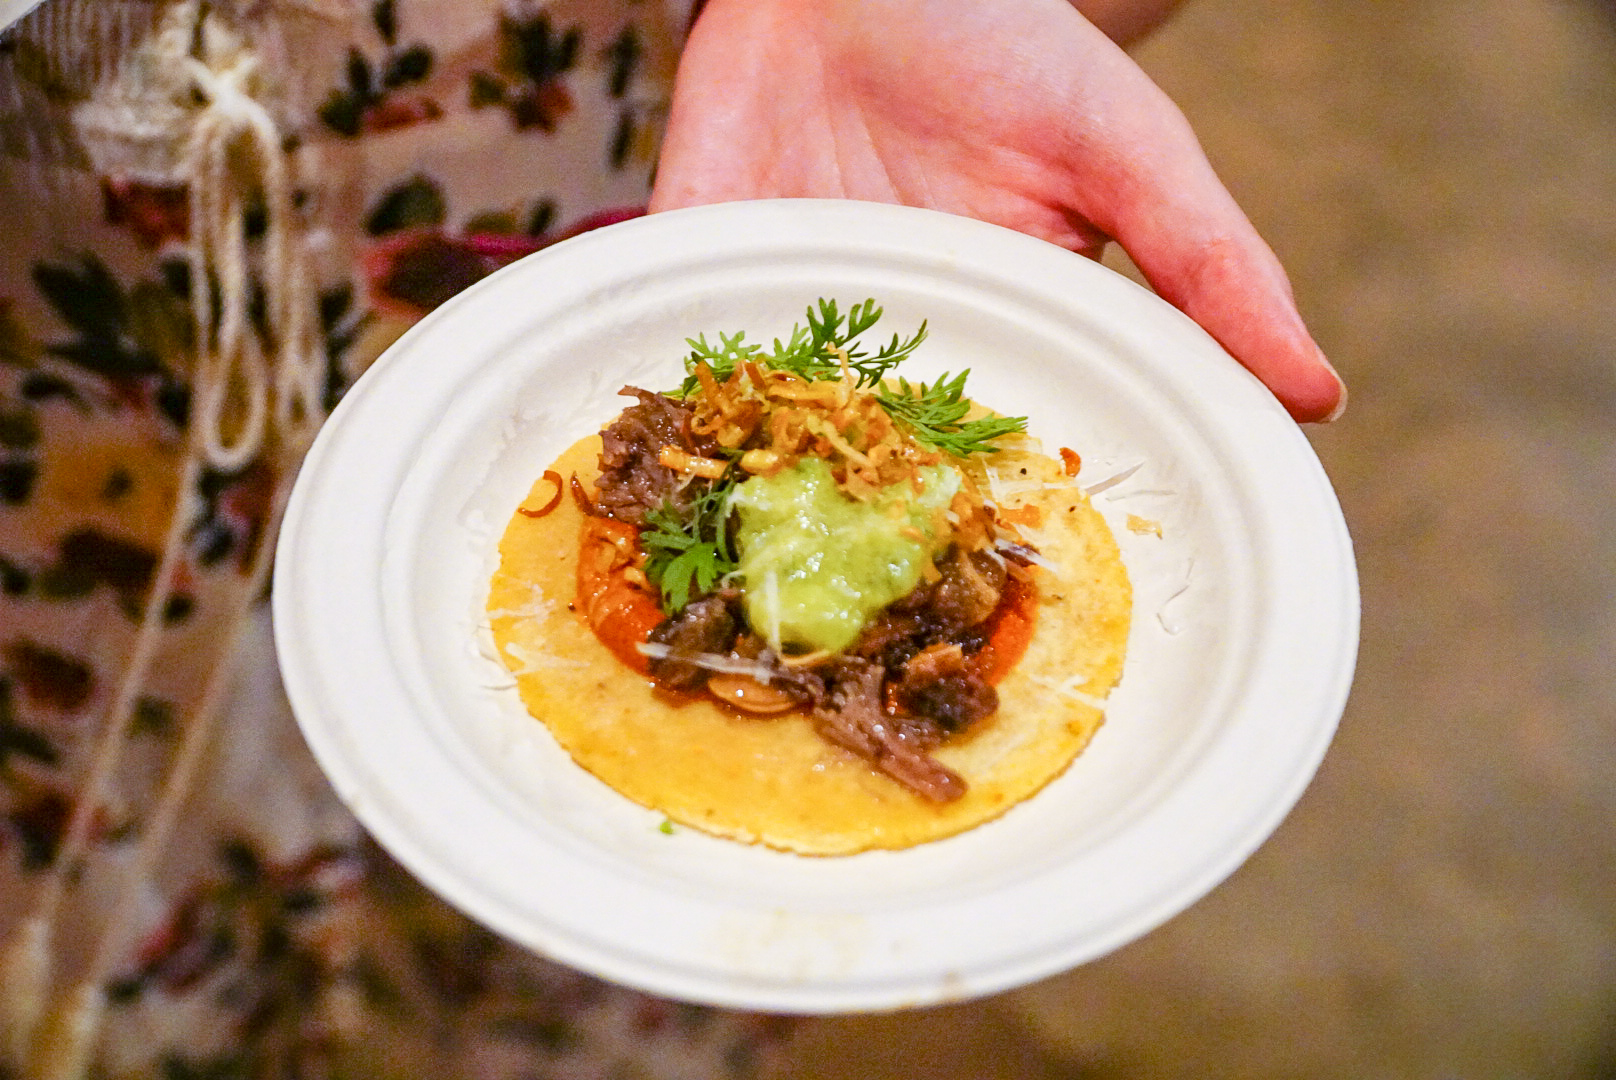 Austin Food and Wine Fest - The best of Rock Your Taco